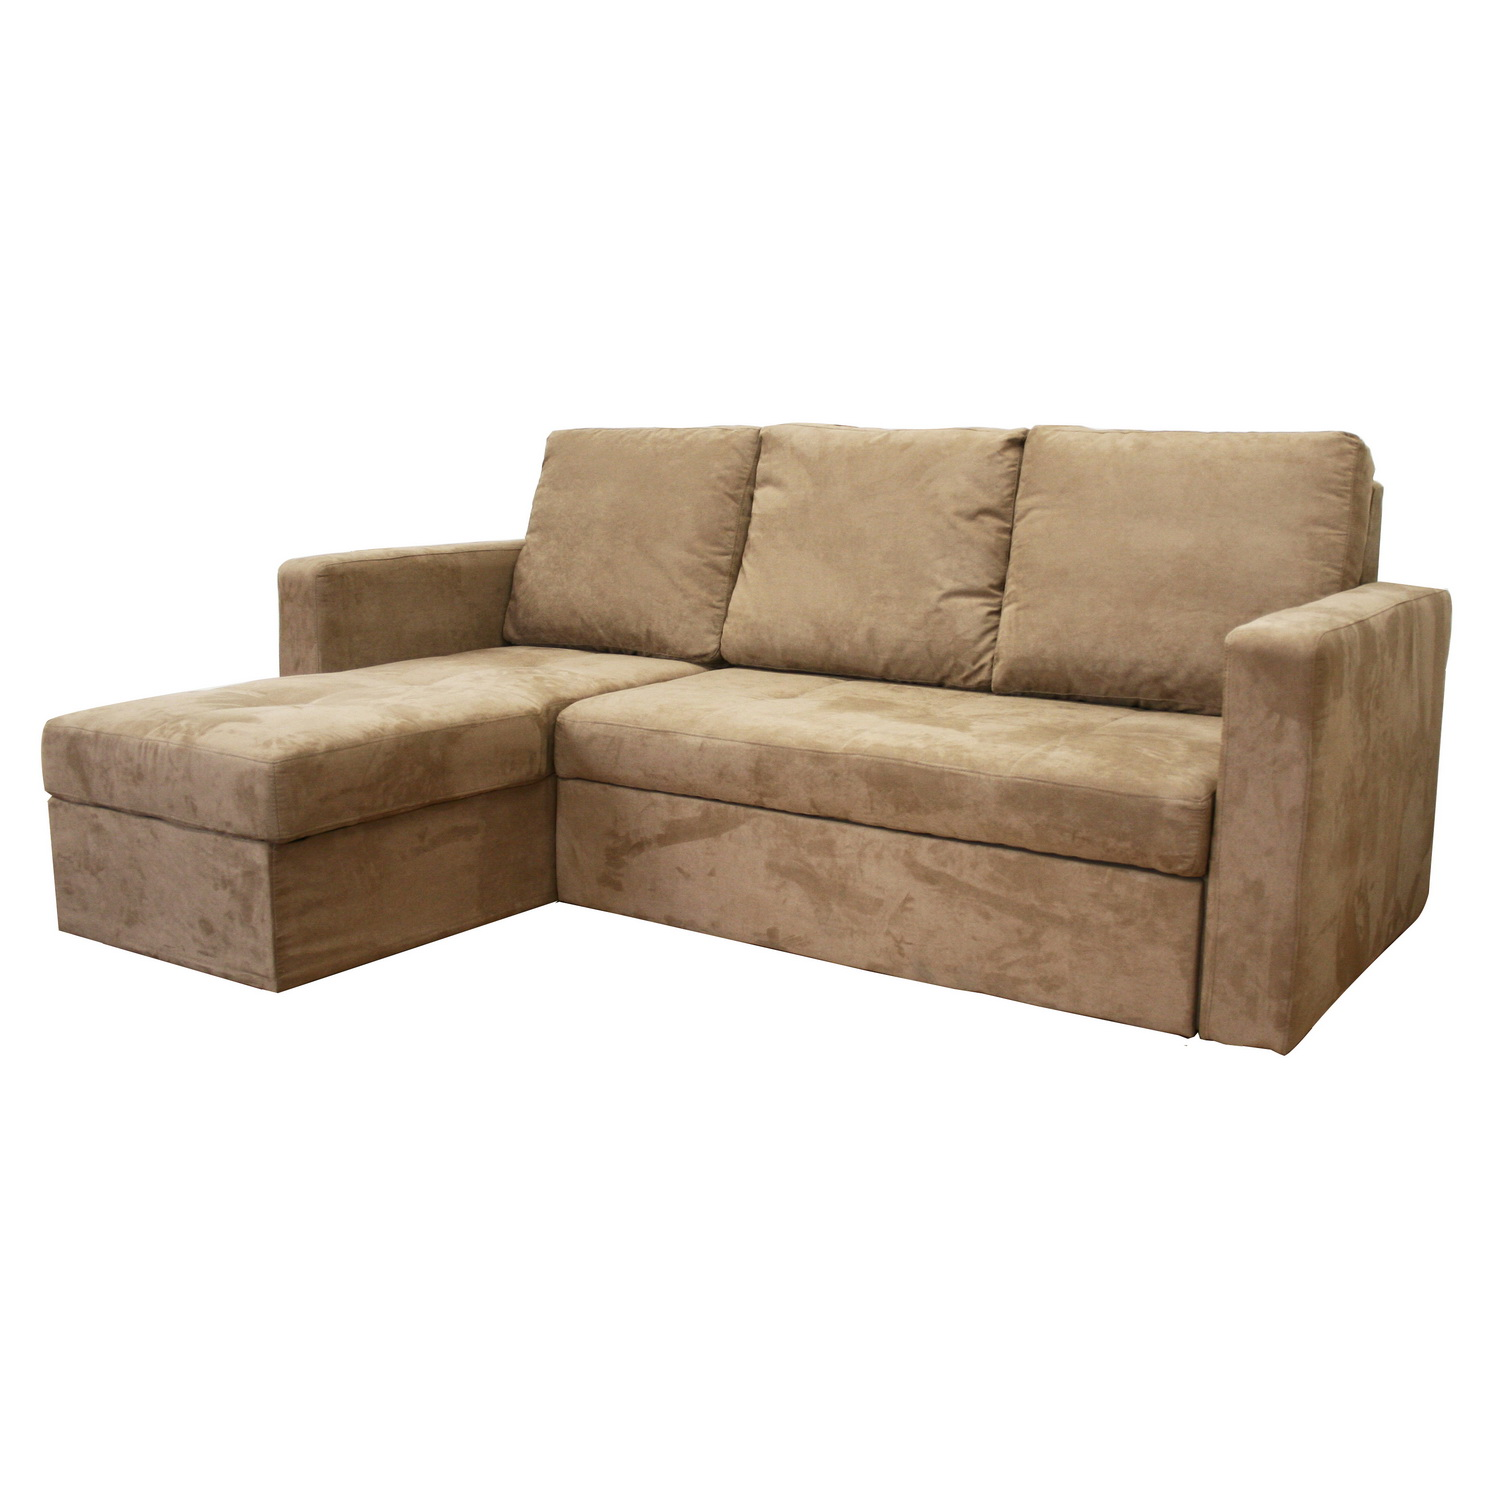 Sofas loveseats for Sofa sofa furniture